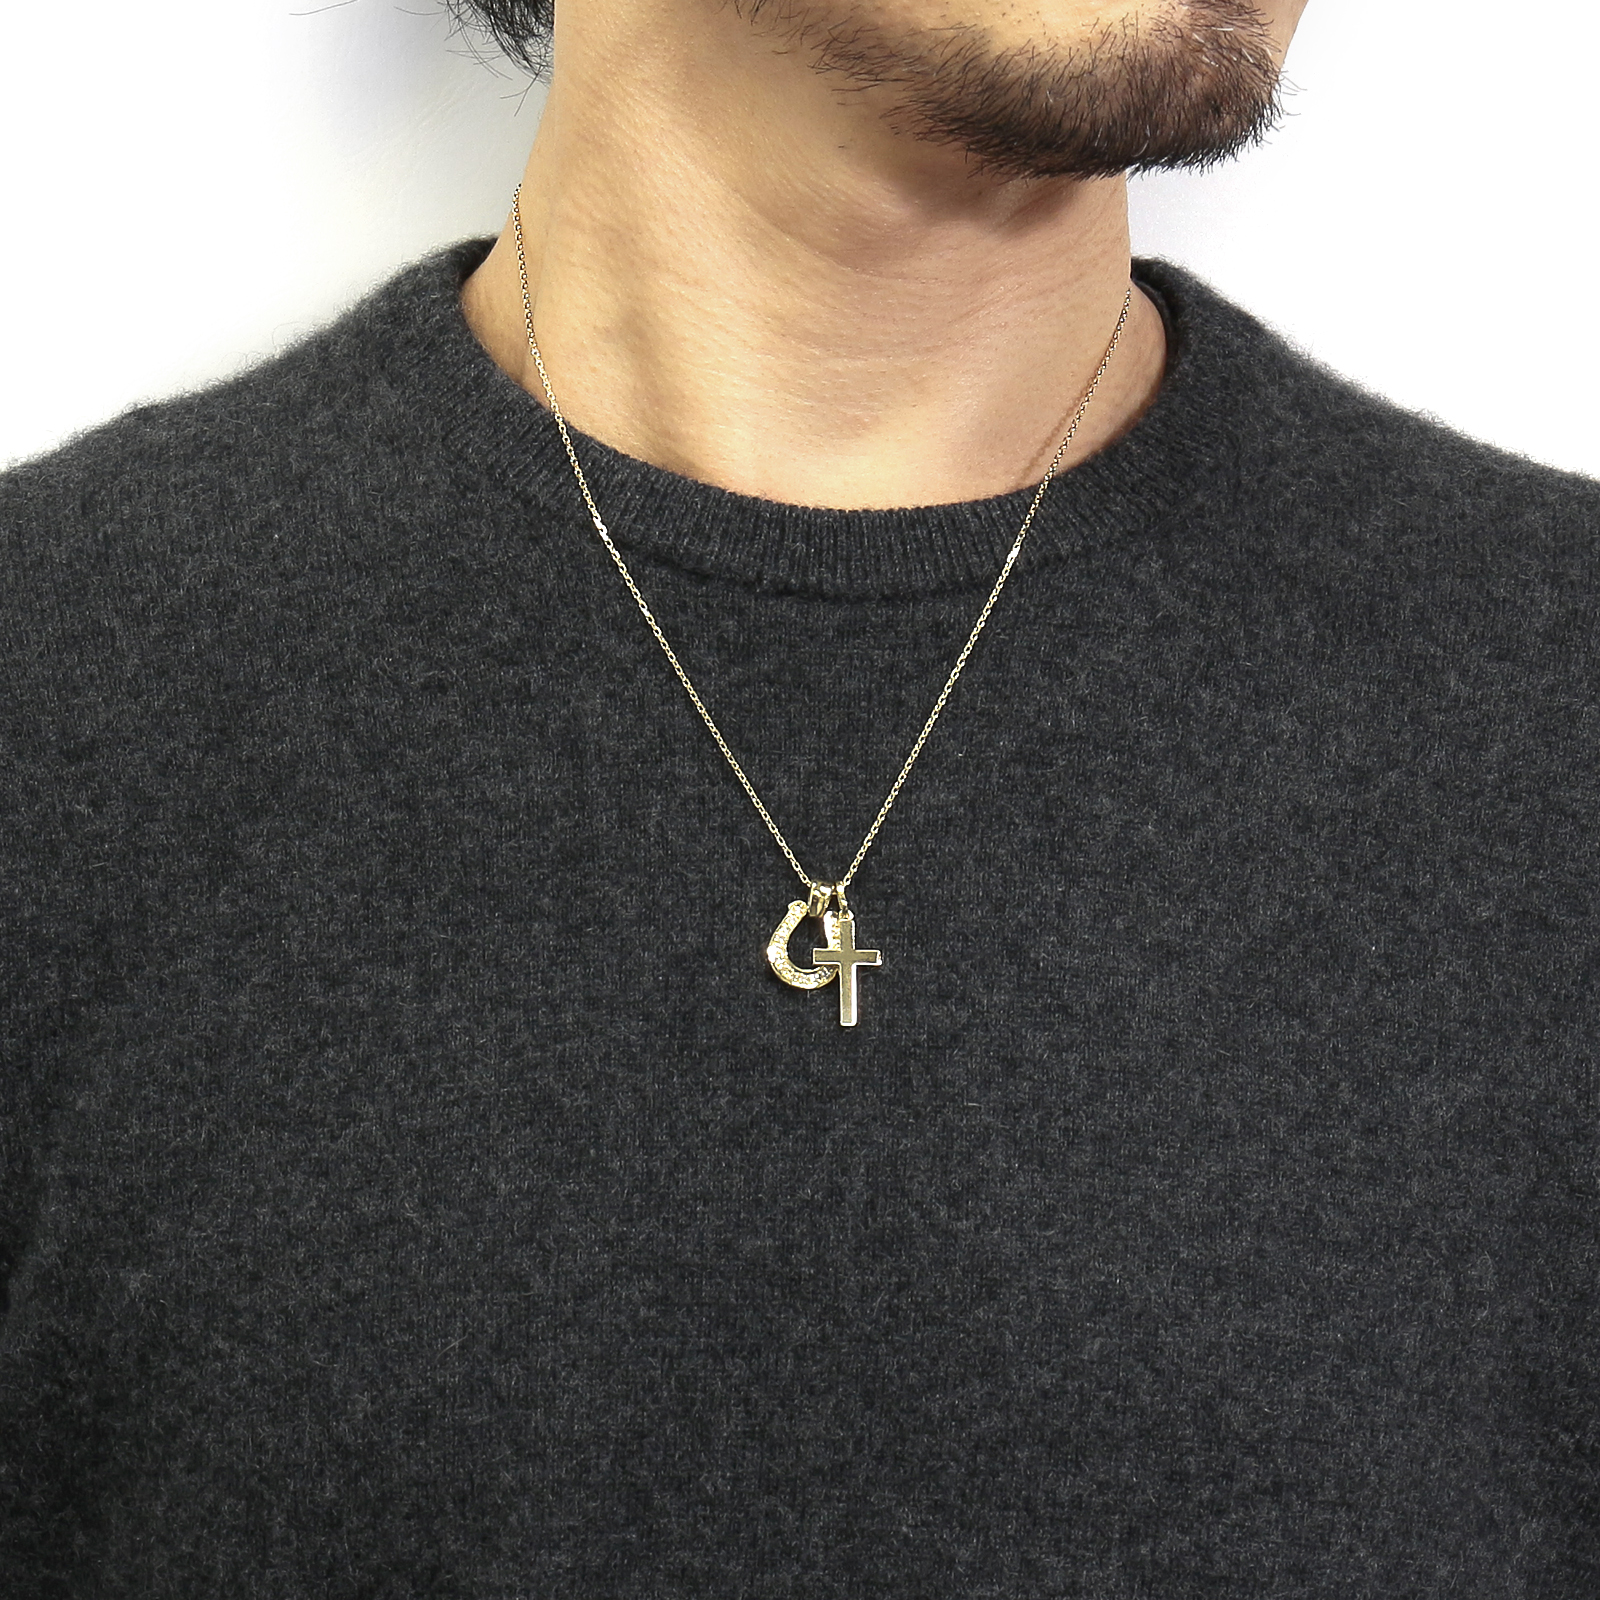 Horseshoe Large + Simple Cross Medium - K18Yellow Gold w/Diamond Set Necklace